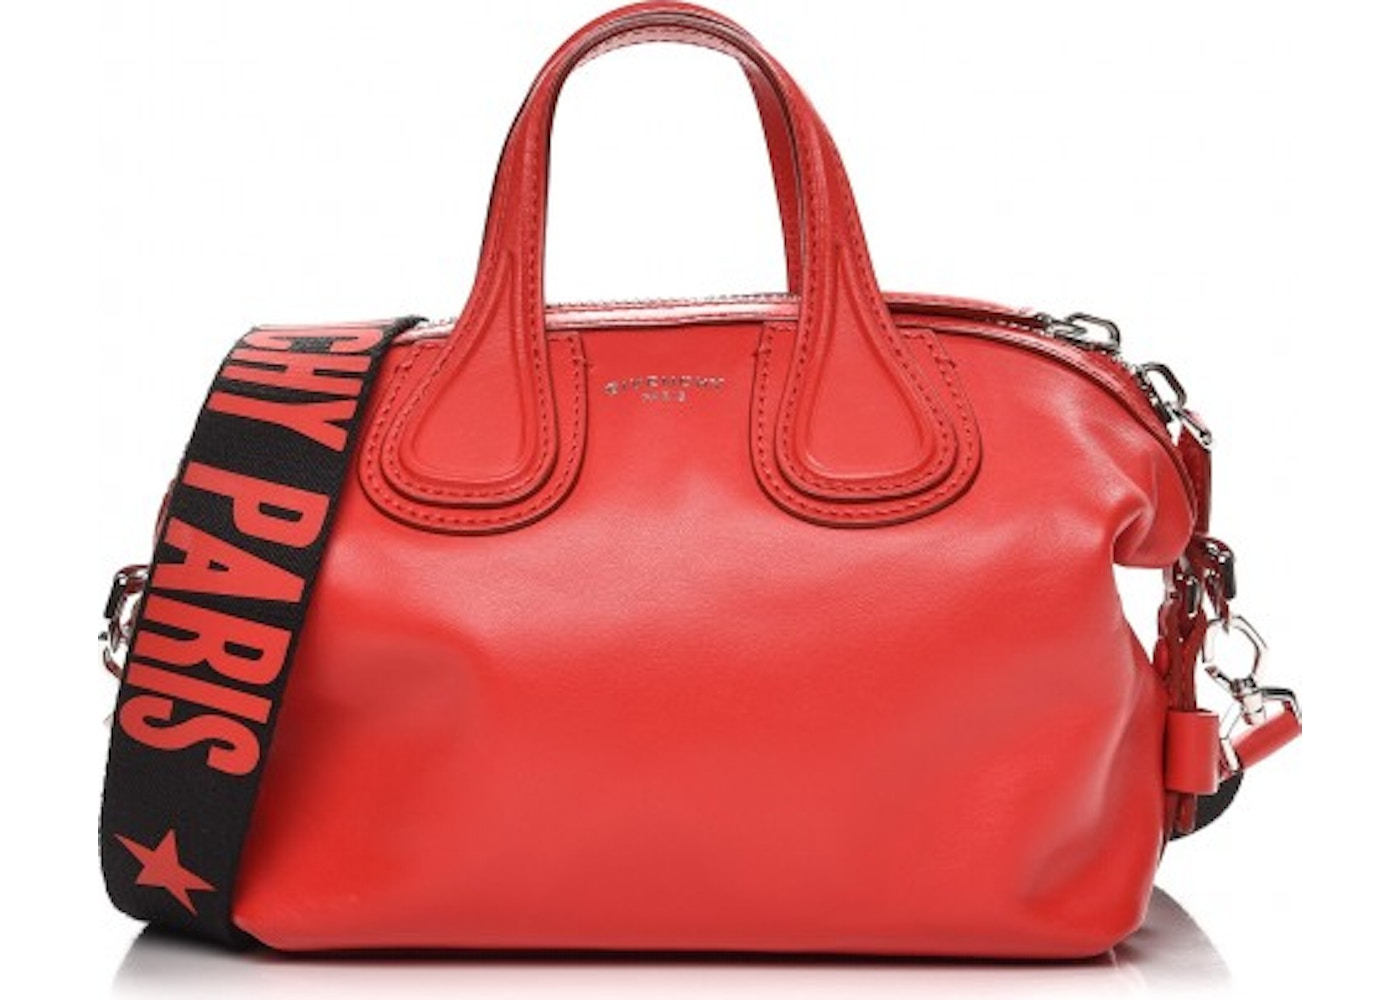 Givenchy Nightingale Tote Logo Print Strap Waxed Micro Medium Red. Logo  Print Strap Waxed Micro Medium Red 80266837625d0